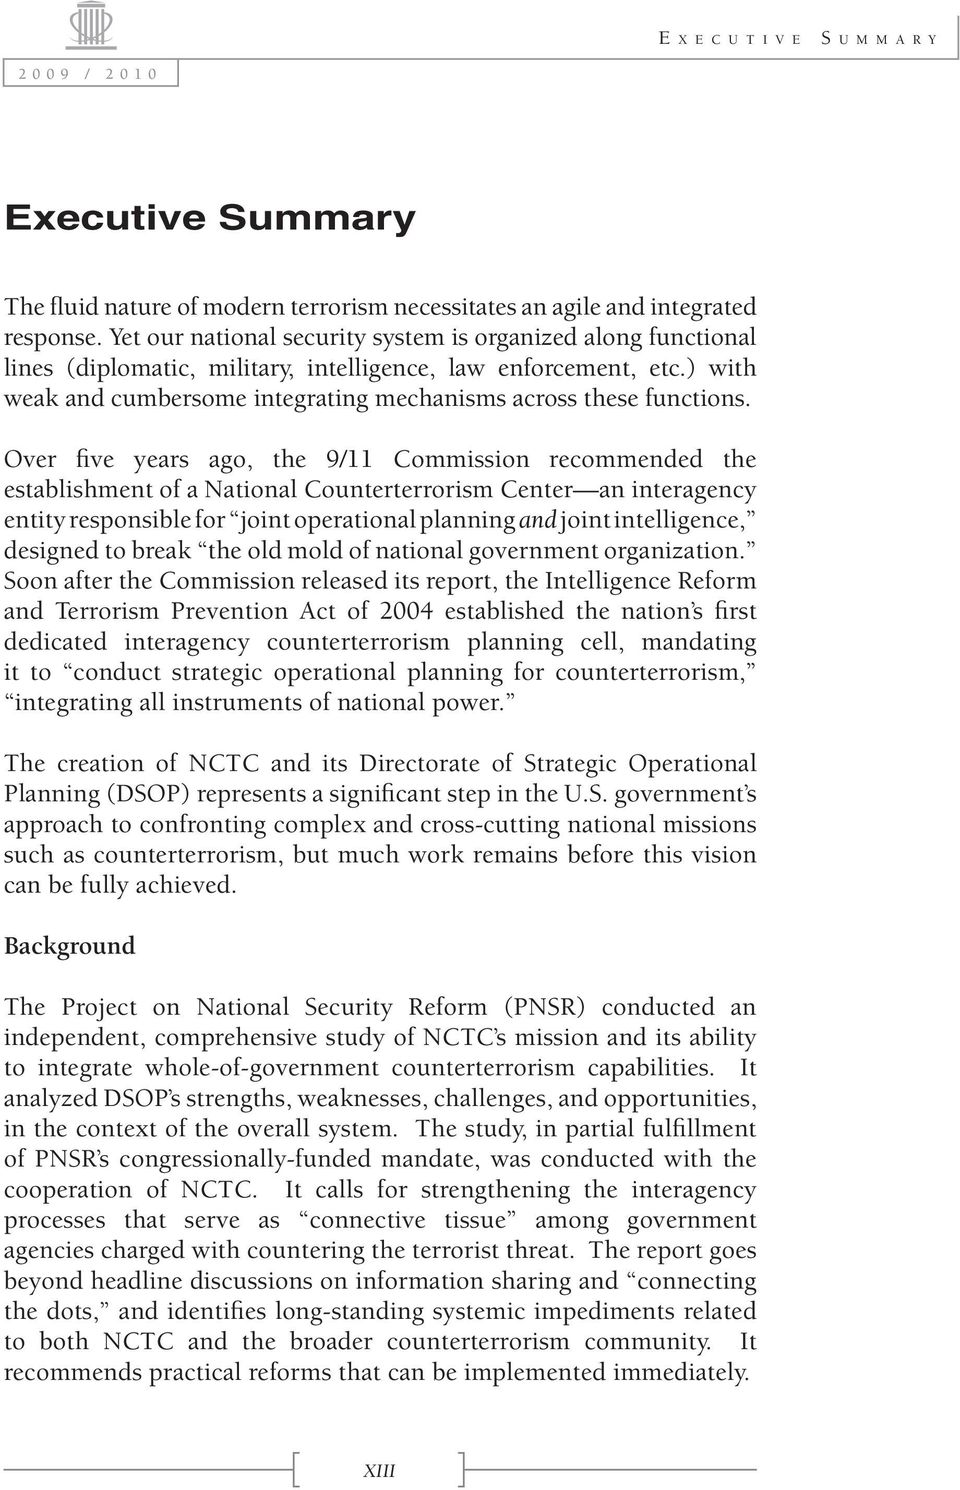 Over five years ago, the 9/11 Commission recommended the establishment of a National Counterterrorism Center an interagency entity responsible for joint operational planning and joint intelligence,